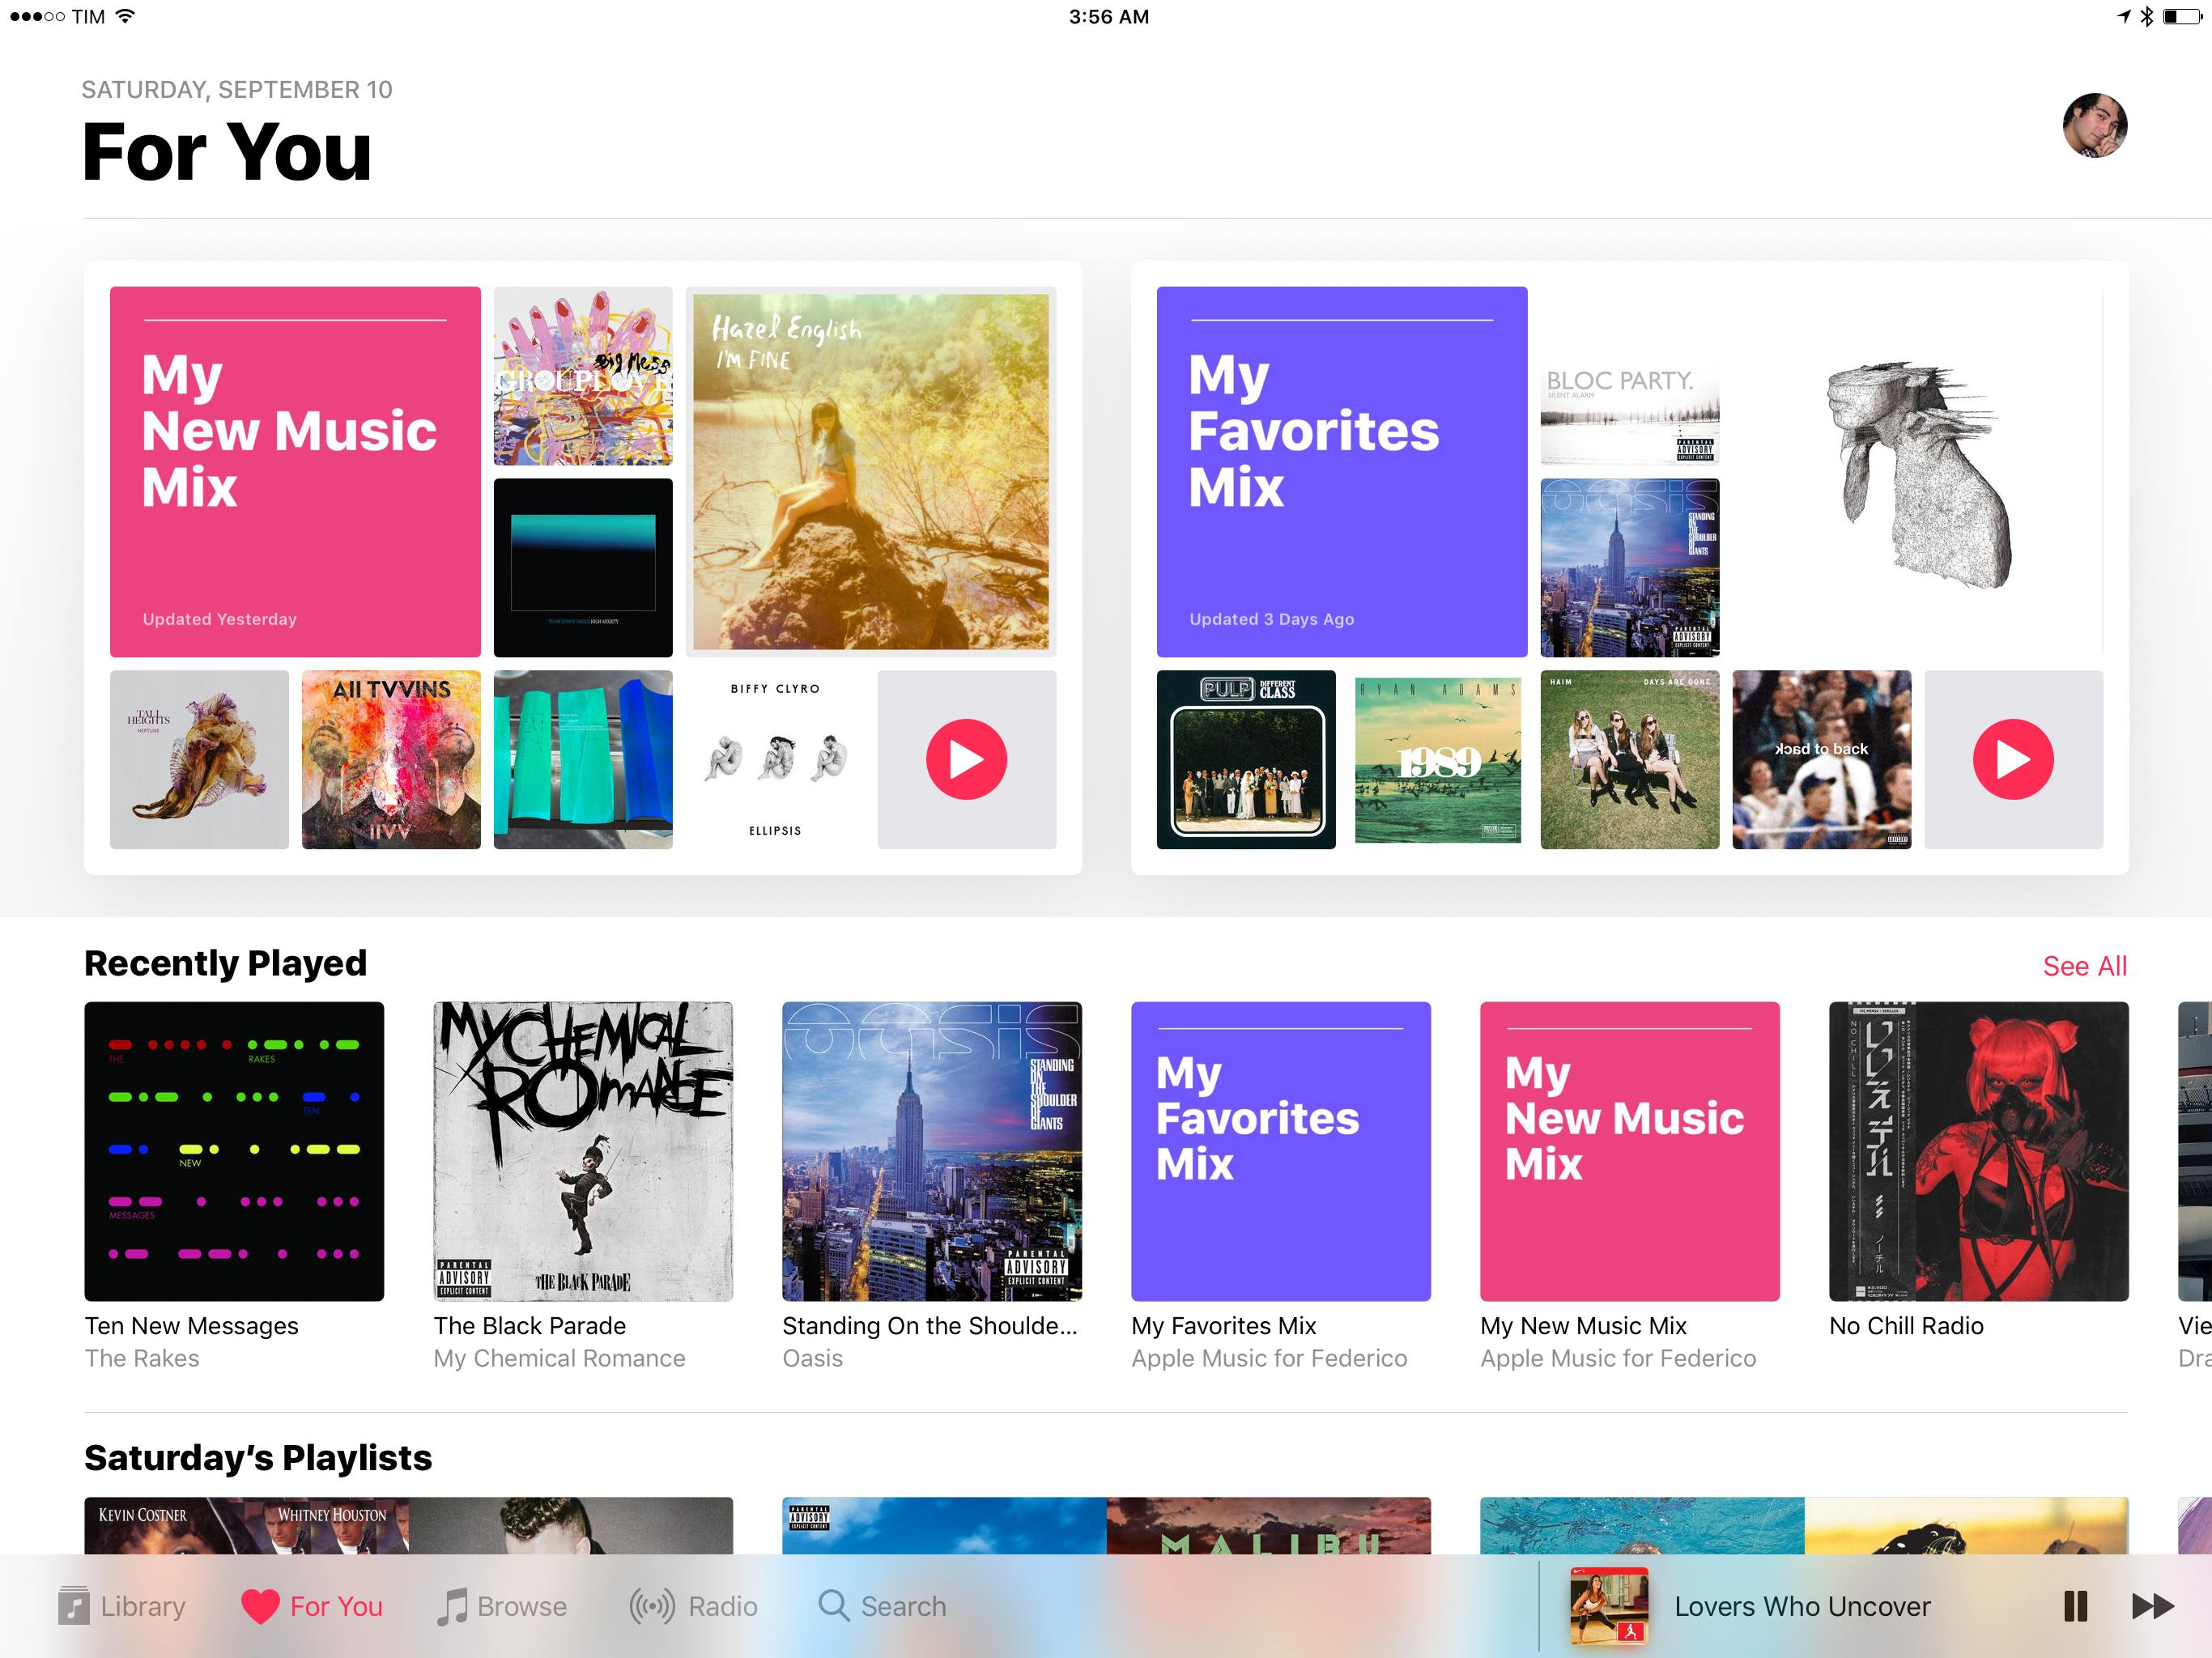 Apple Music's For You page on the iPad.